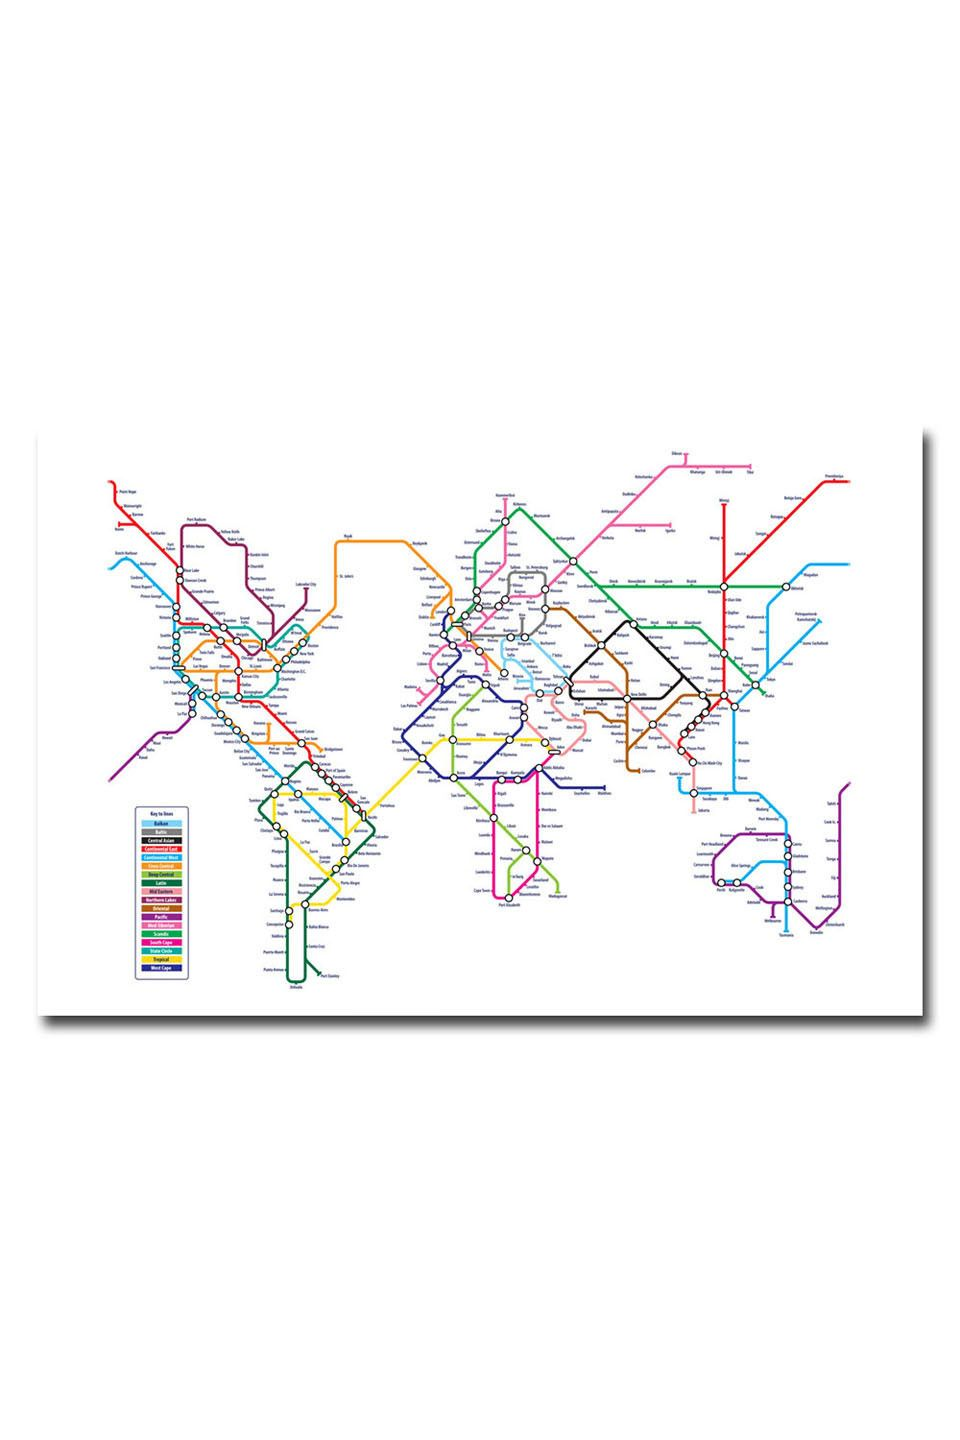 Nyc Subway Map Canvas Wall Art.I Loved This Item From Beyond The Rack And Thought You Would Too